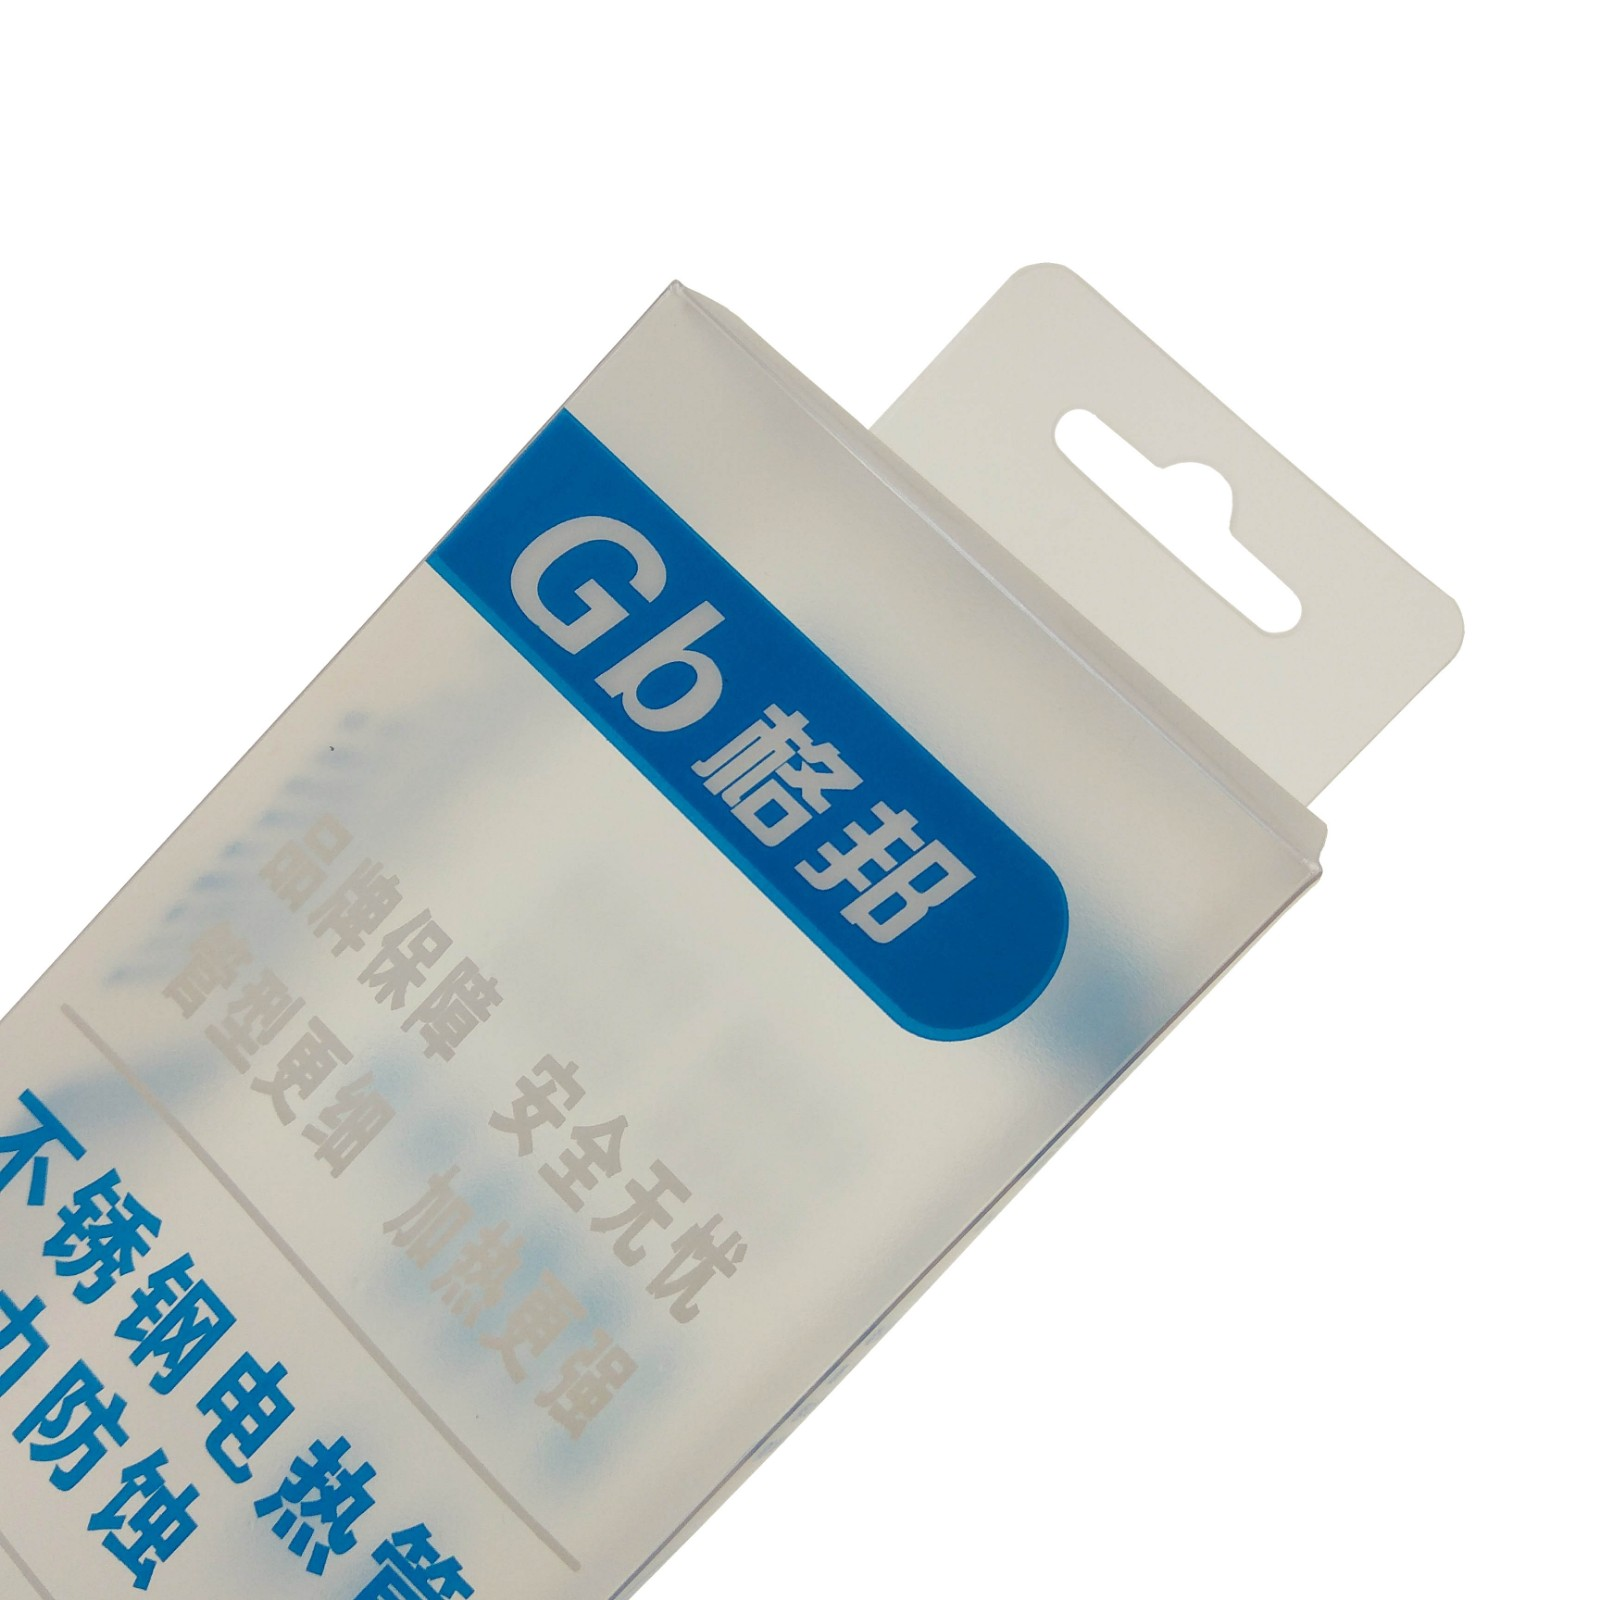 Yijianxing Plastic Products superior plastic box packaging at discount for gifts-3